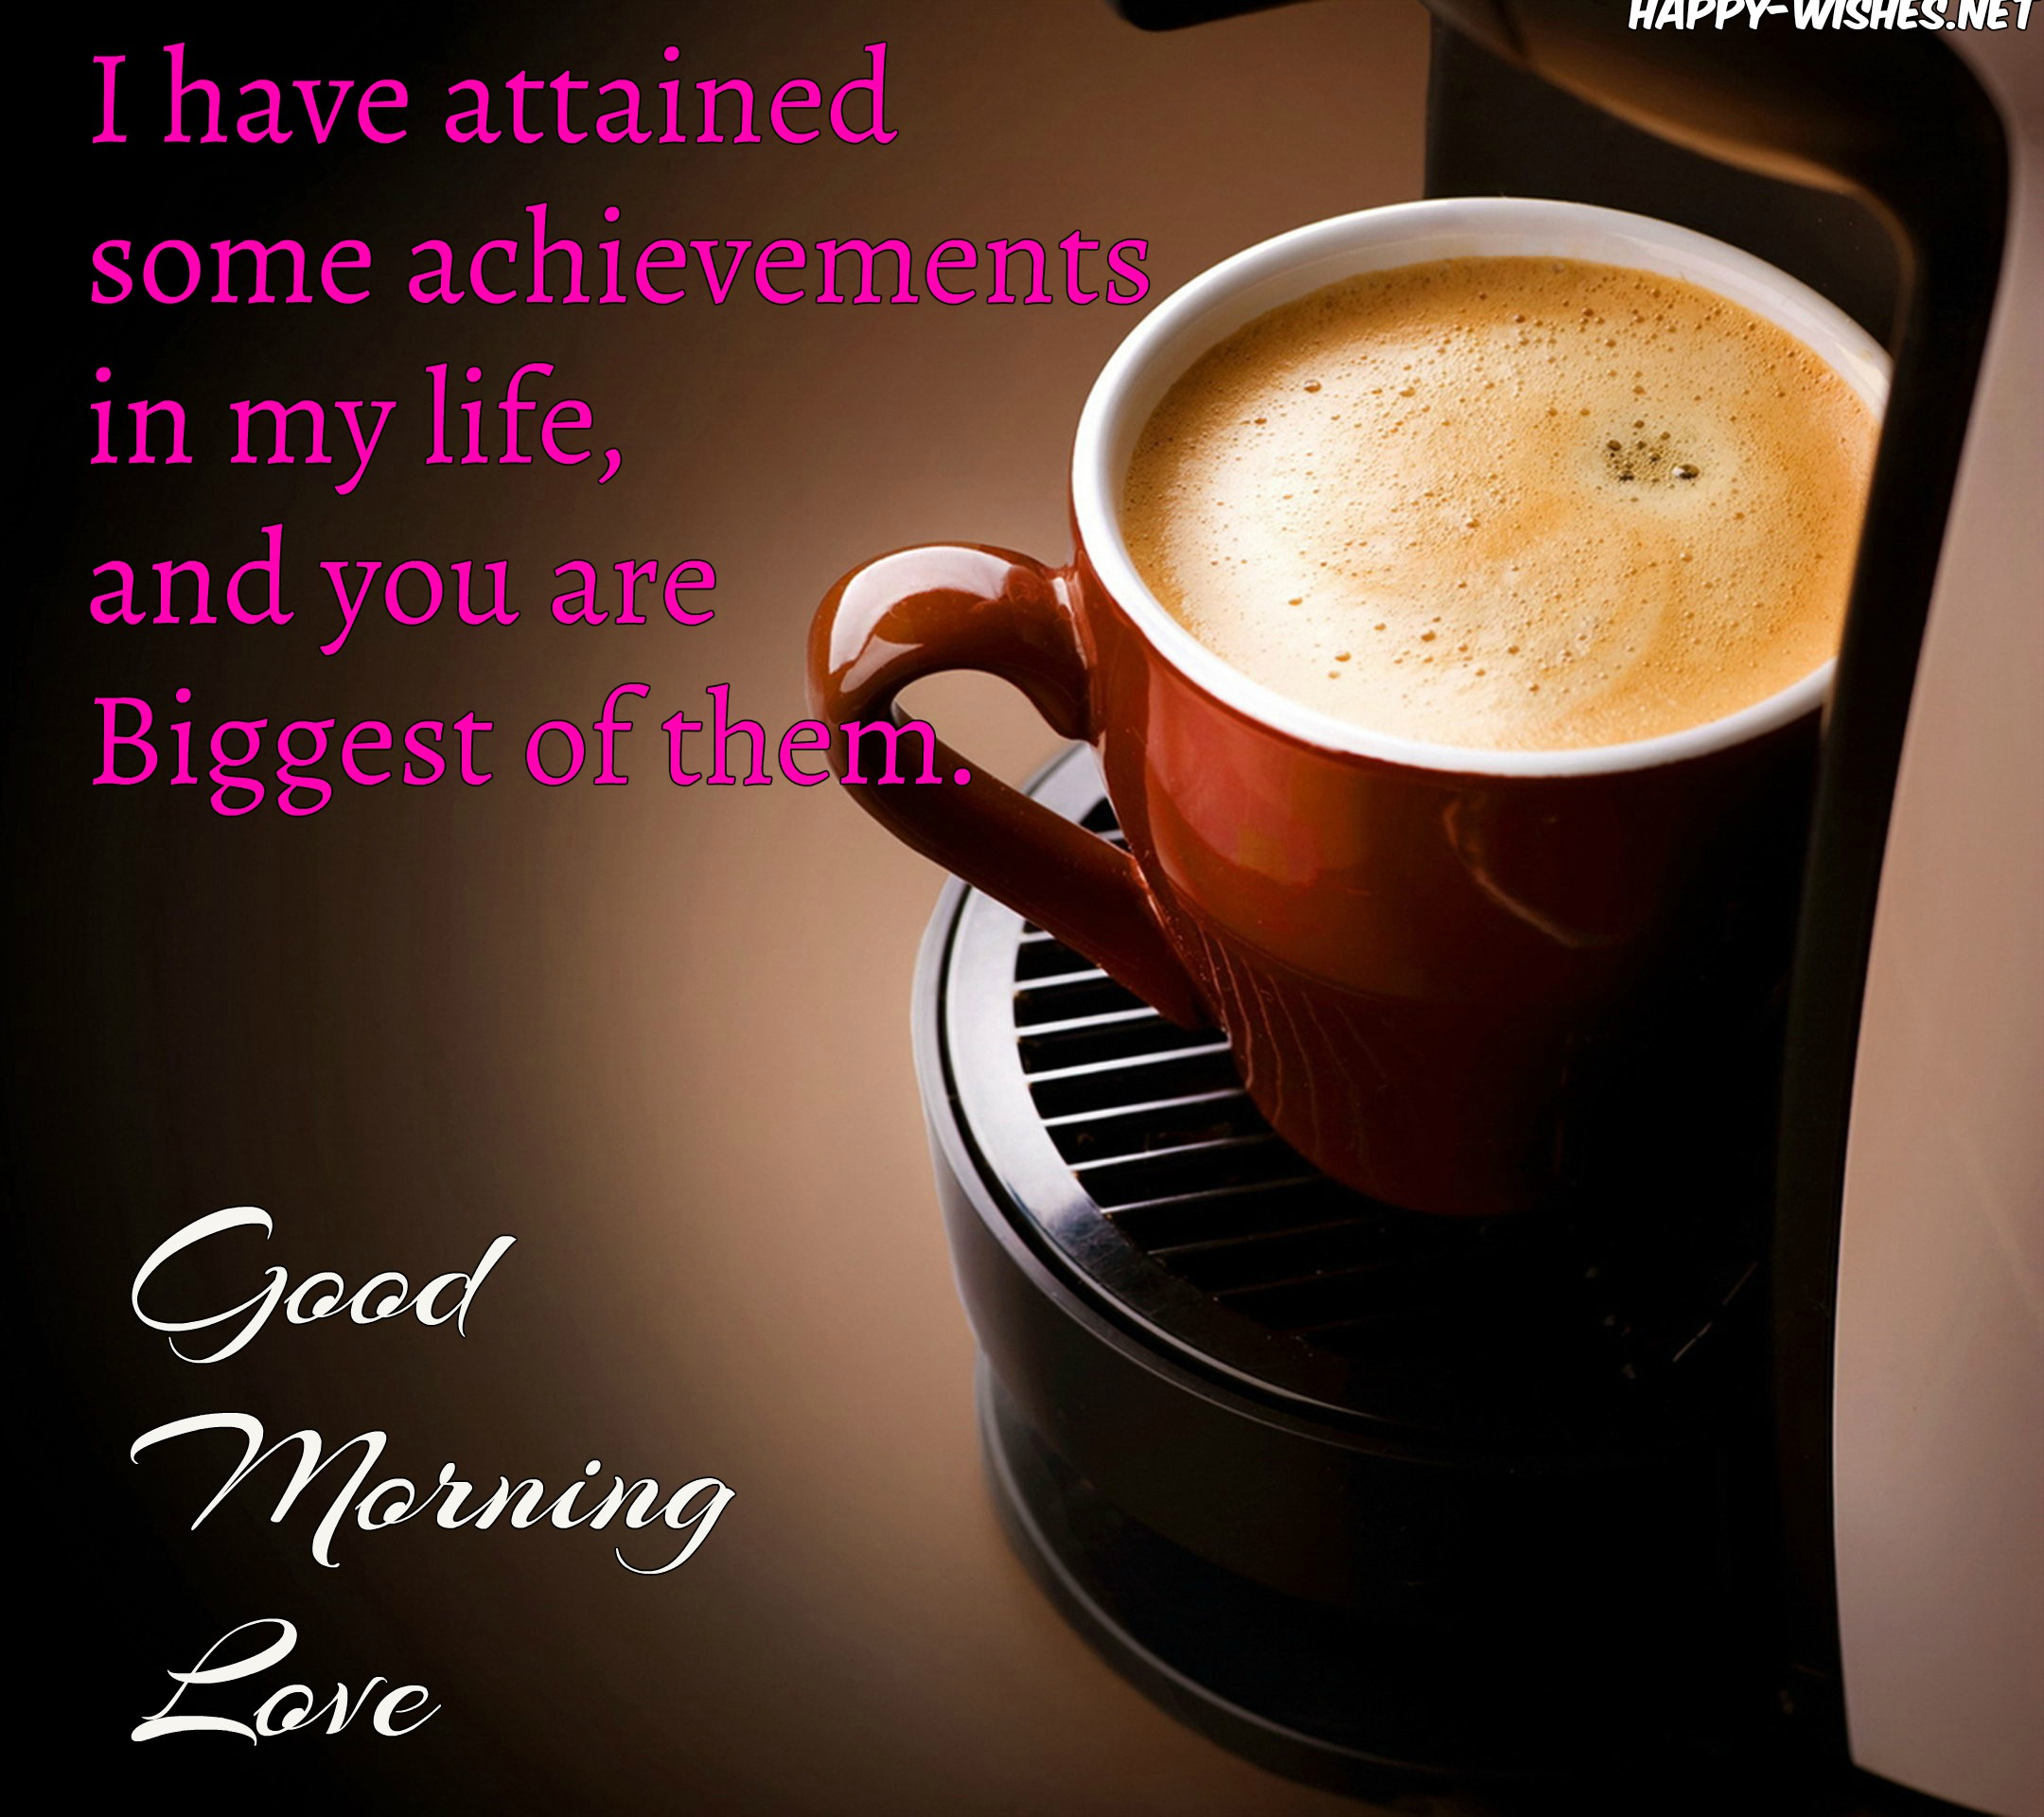 8 Best Good morning my love Images and Quotes - Ultra Wishes